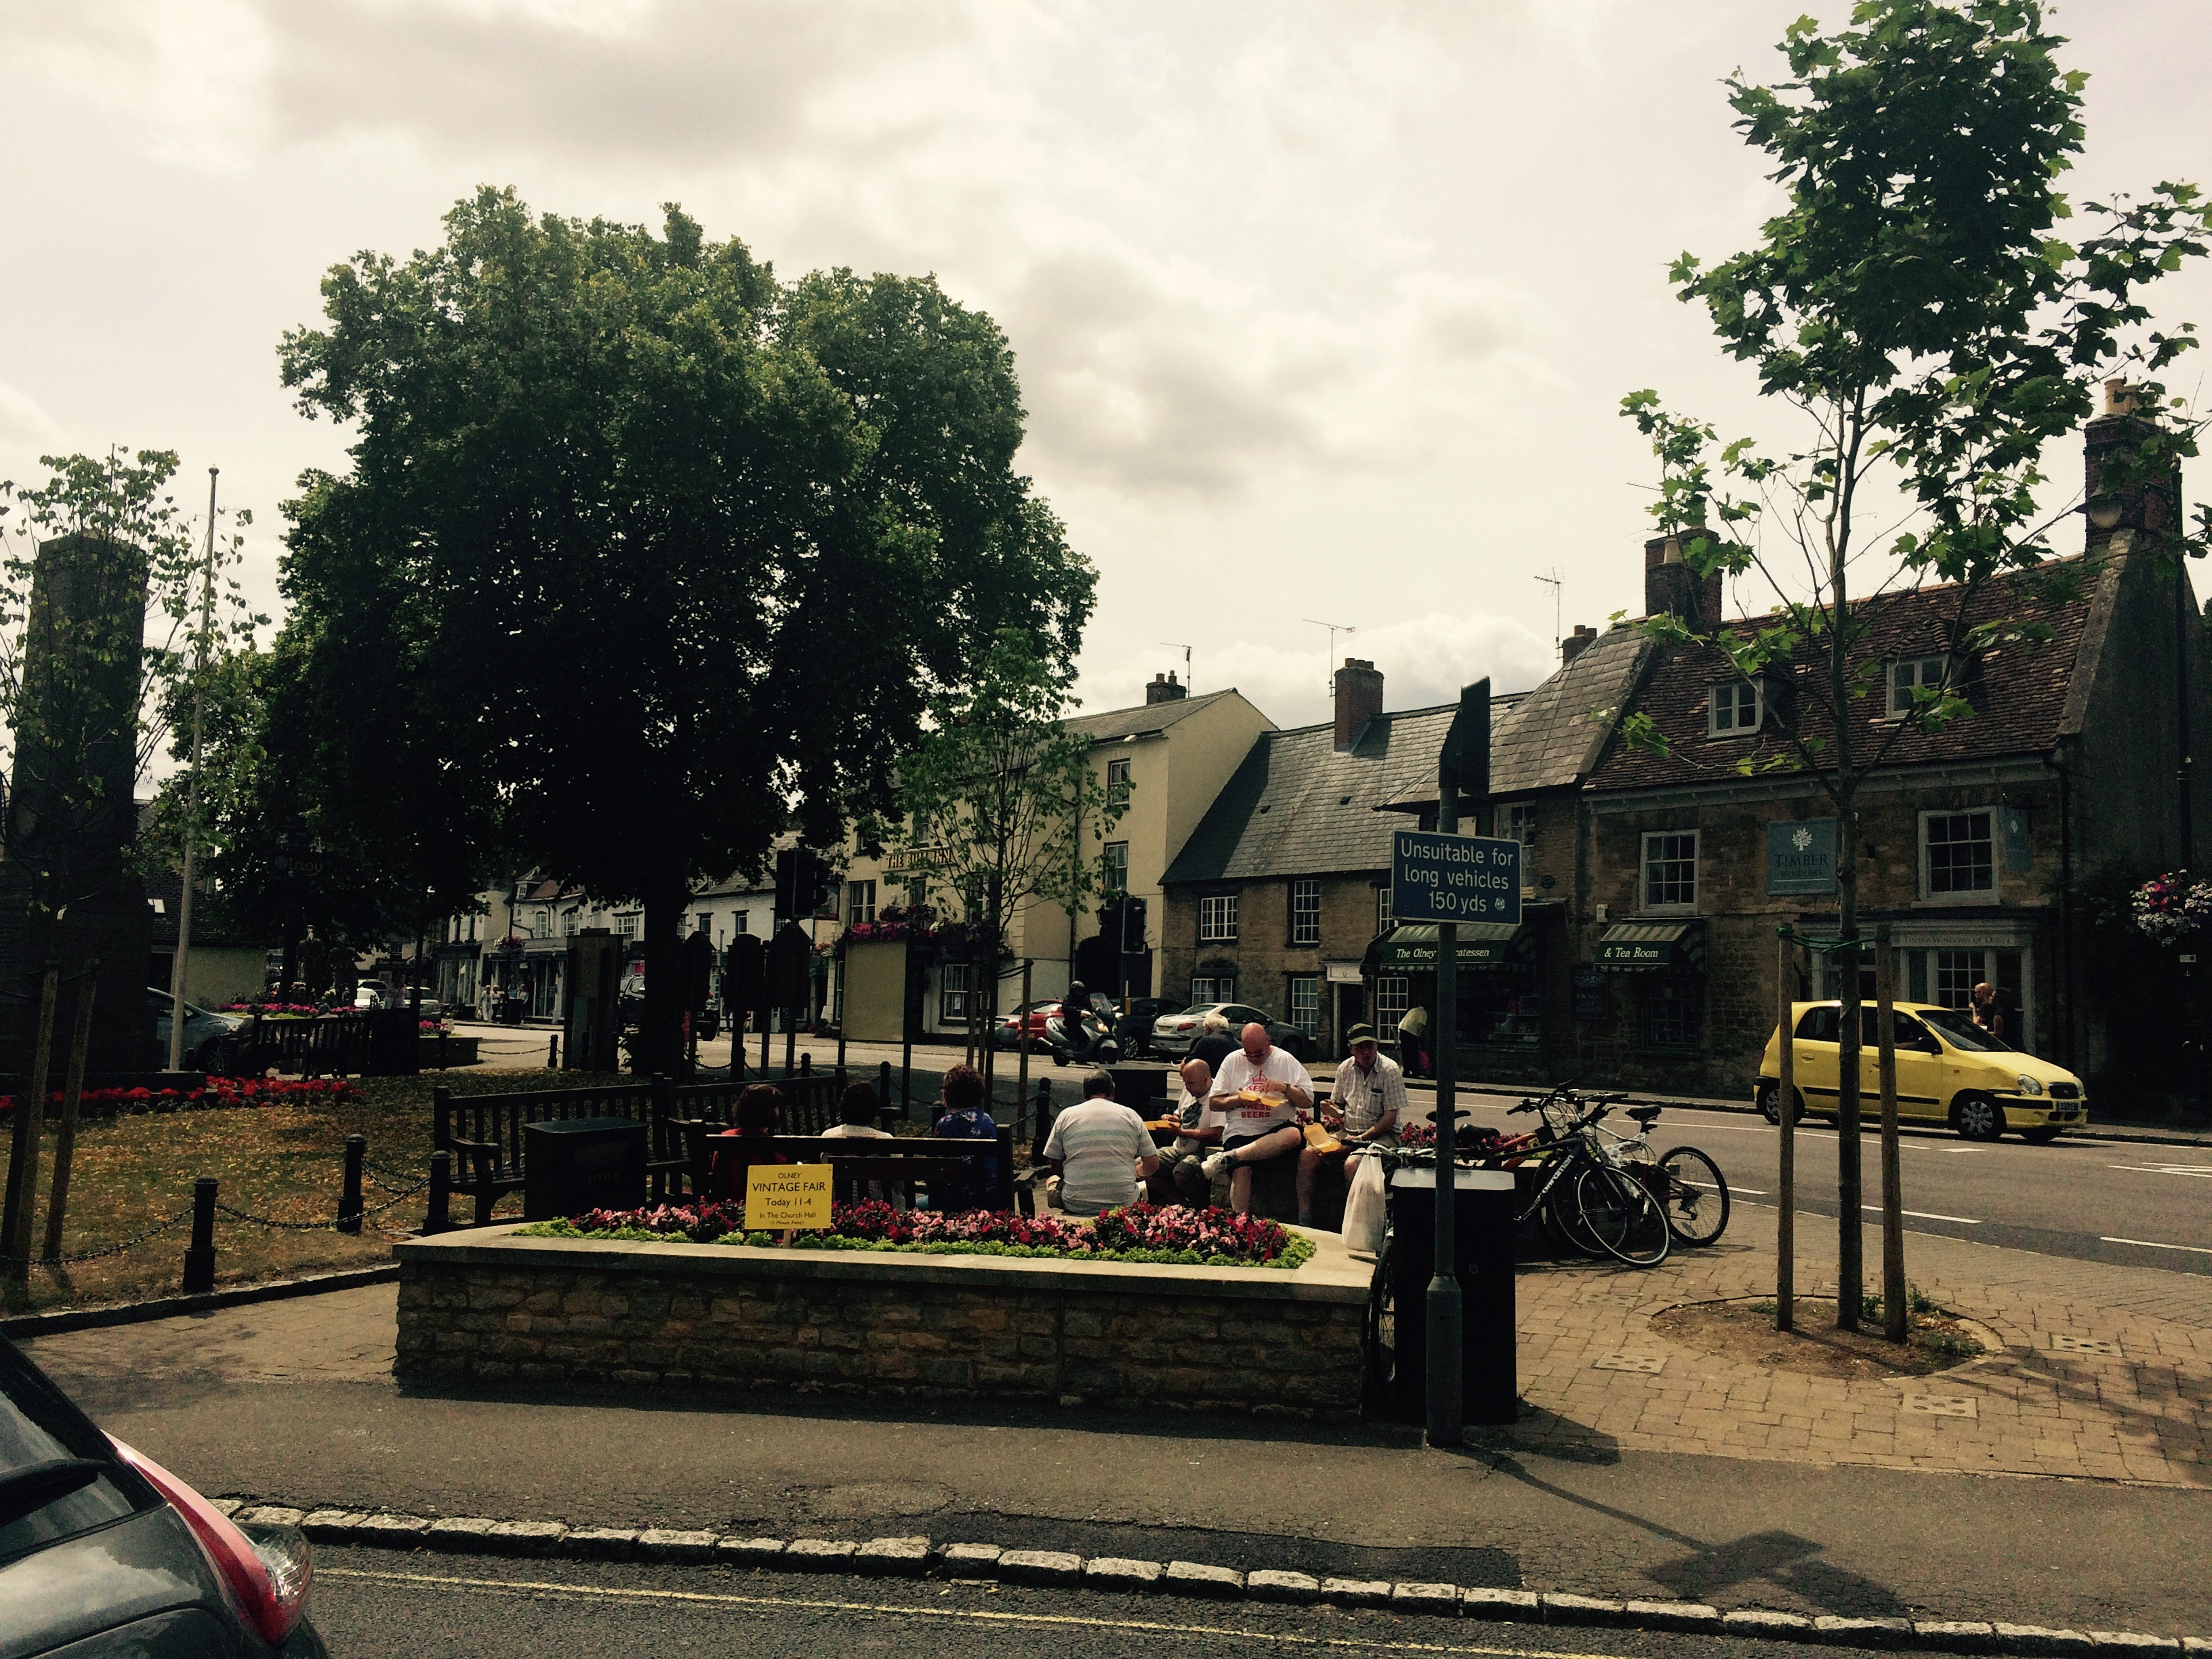 Square in the charming town of Olney on our visit with Nicky and Noel.